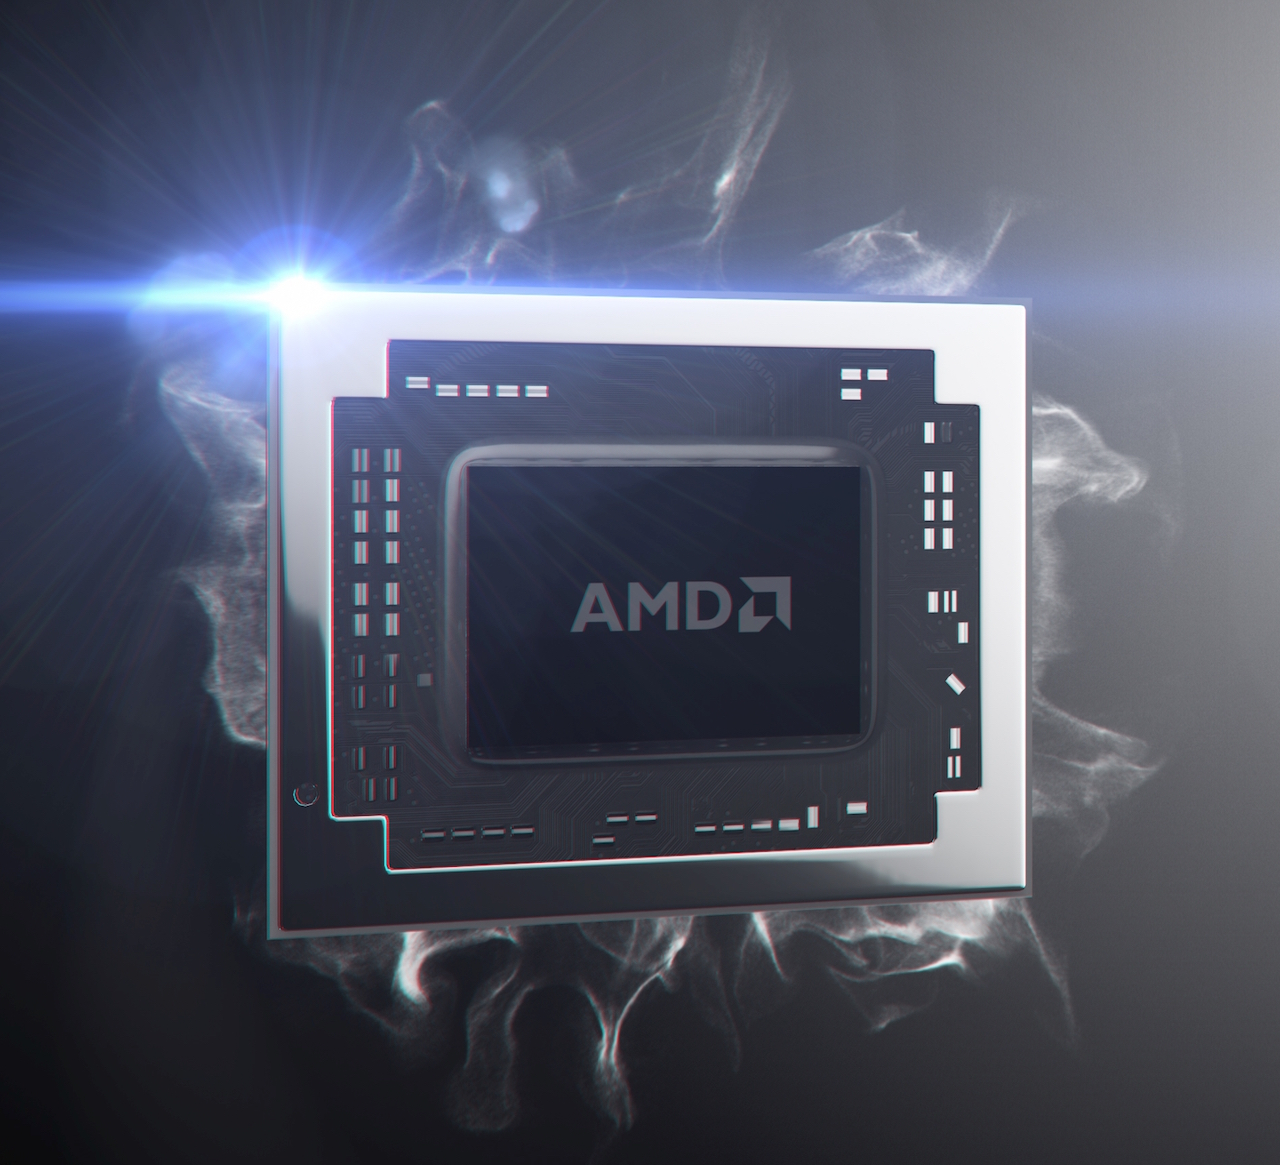 Amd a10 7860k specifications